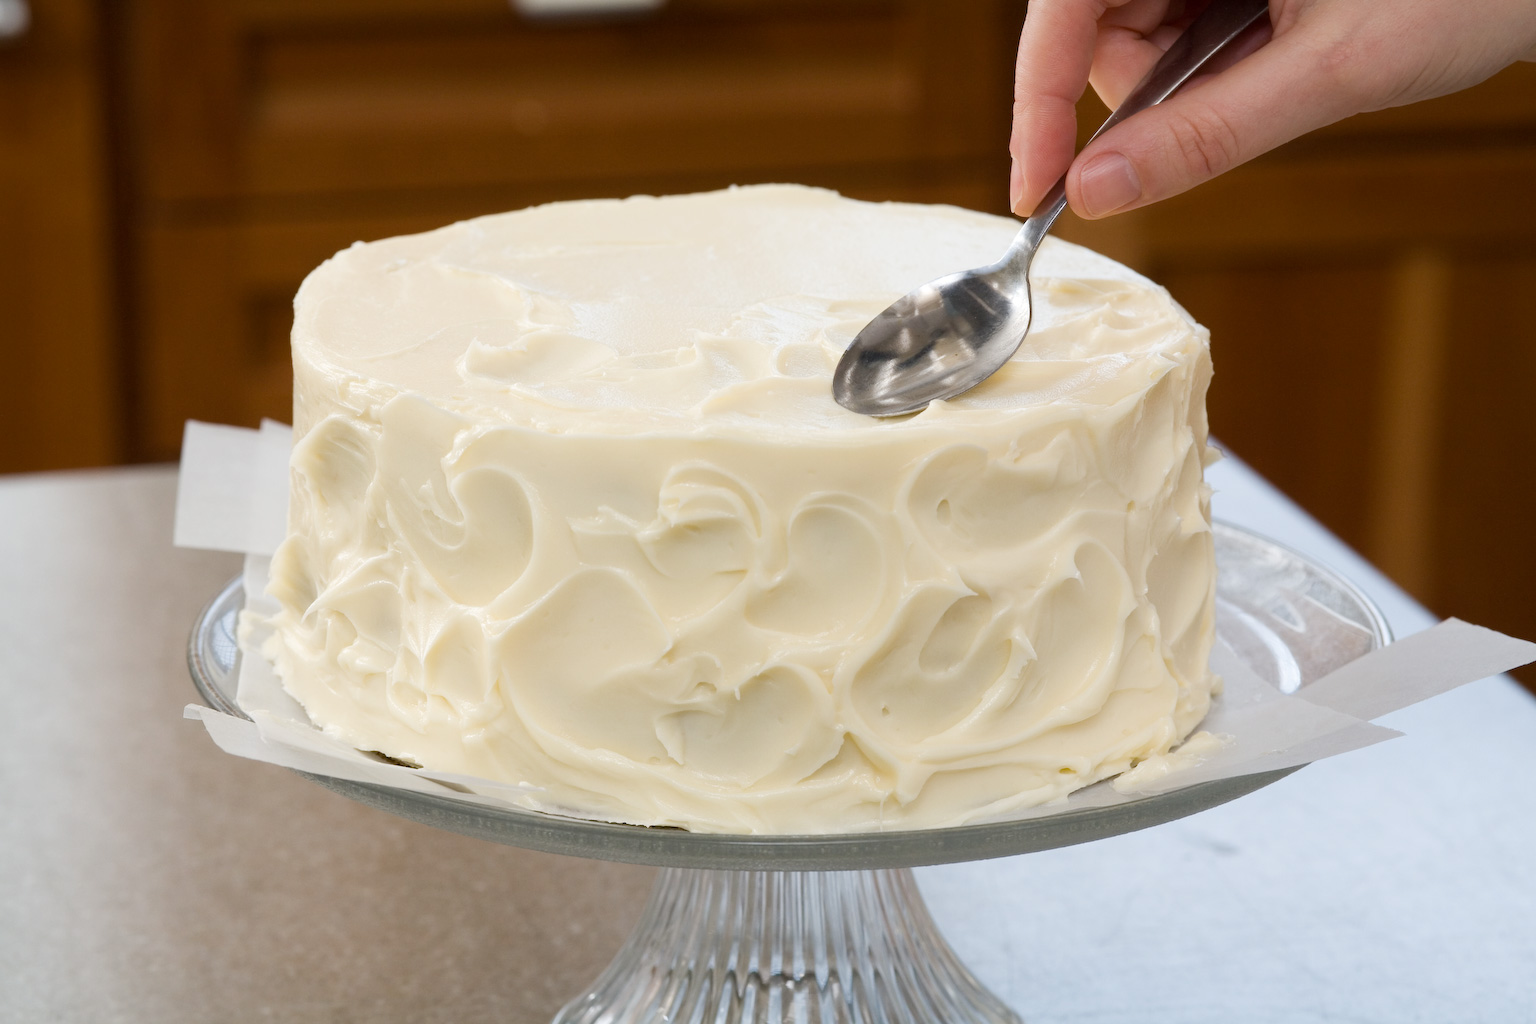 Easy Cake Decorating At Home : Easy Bake Games: Secrets to Decorating Layer Cakes